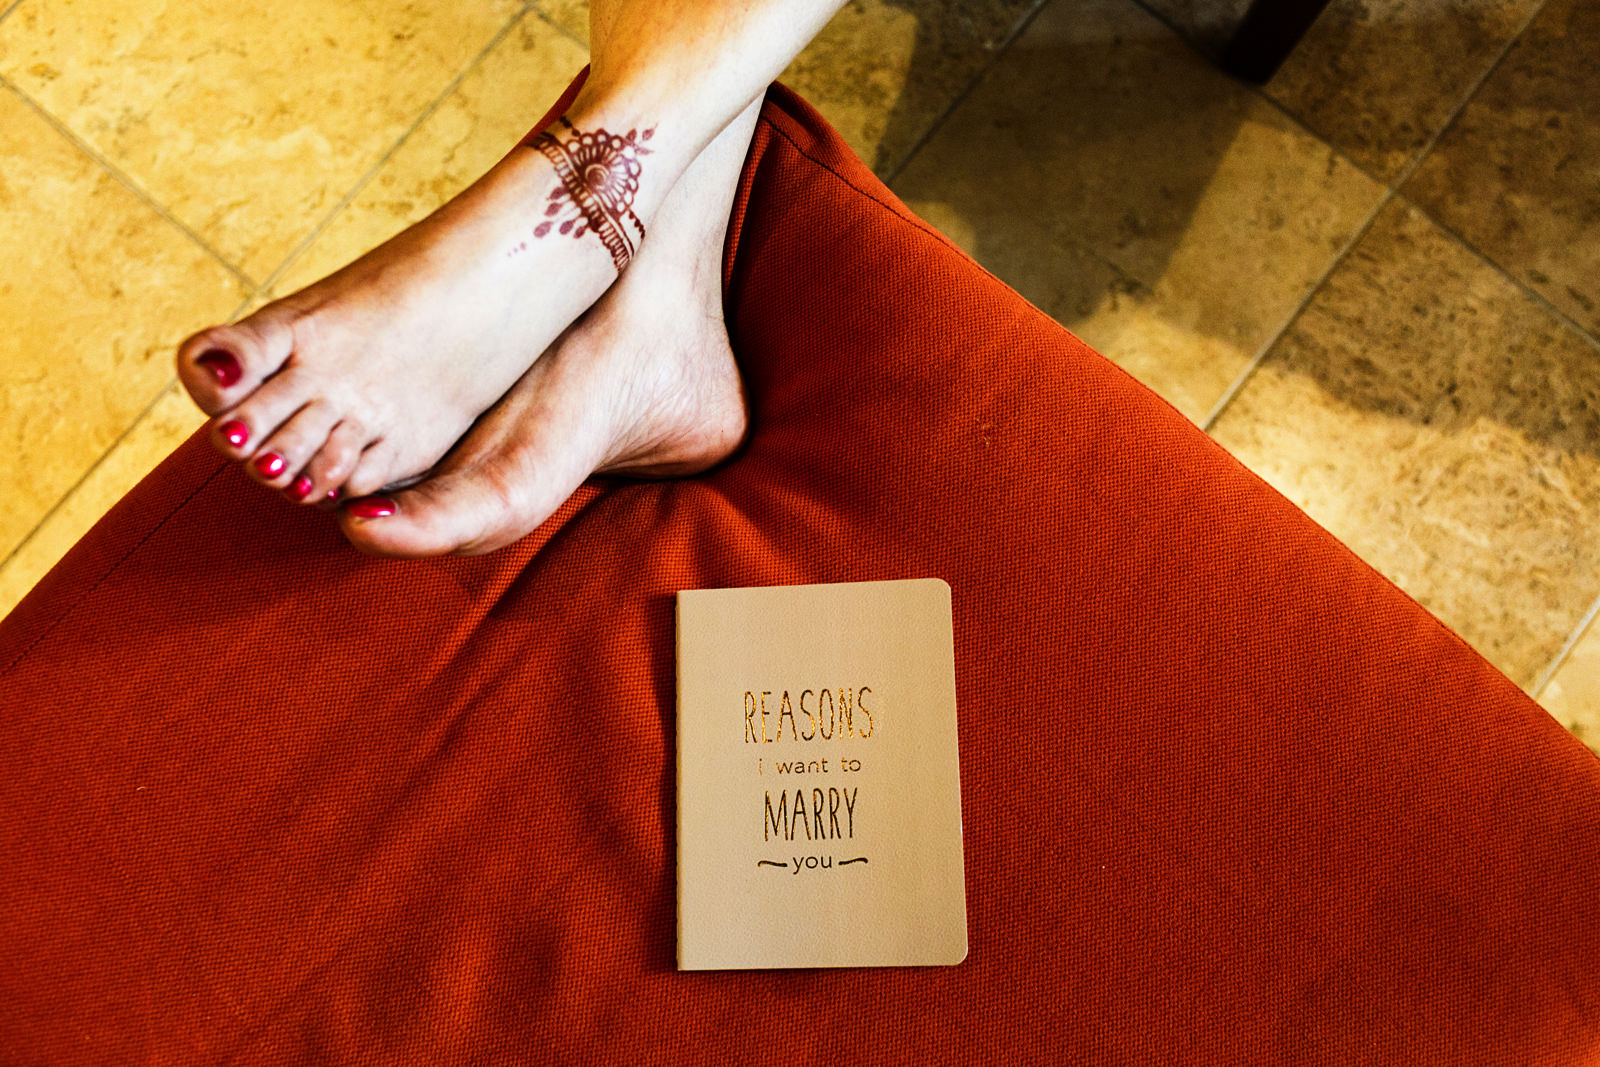 Wedding detail vows book next to henna tattooed bride's feet